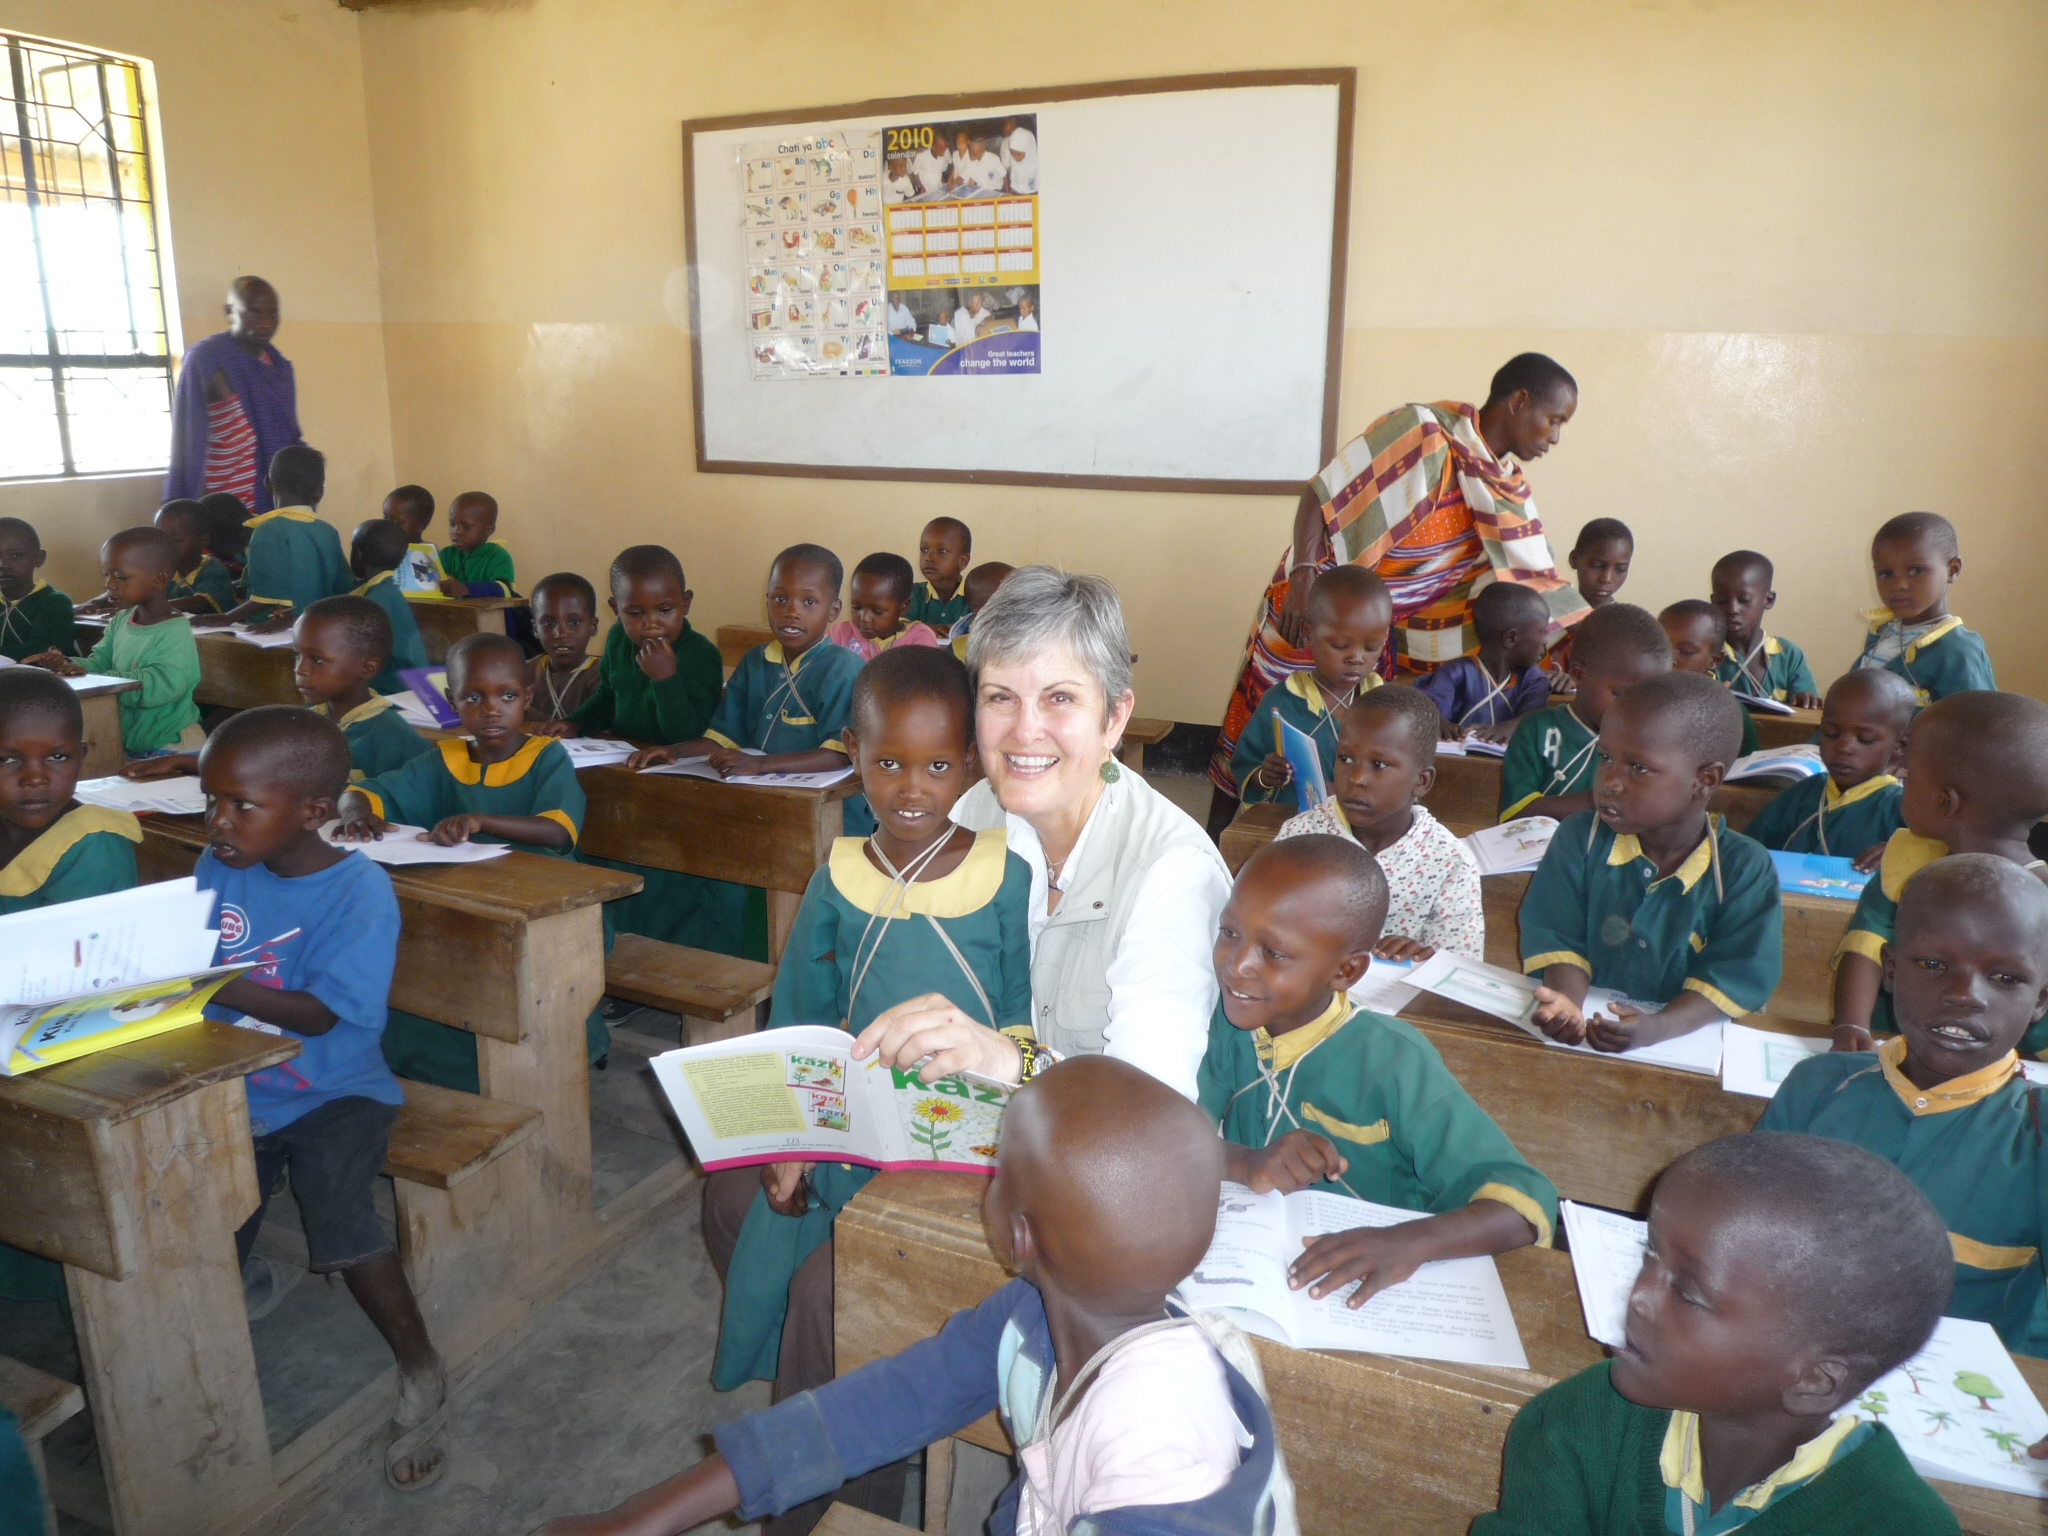 Cheryl Kile sits with students at Endupoto Primary School, which is preparing to build its fifth classroom this year. (Photo/Courtesy of USC Rossier)